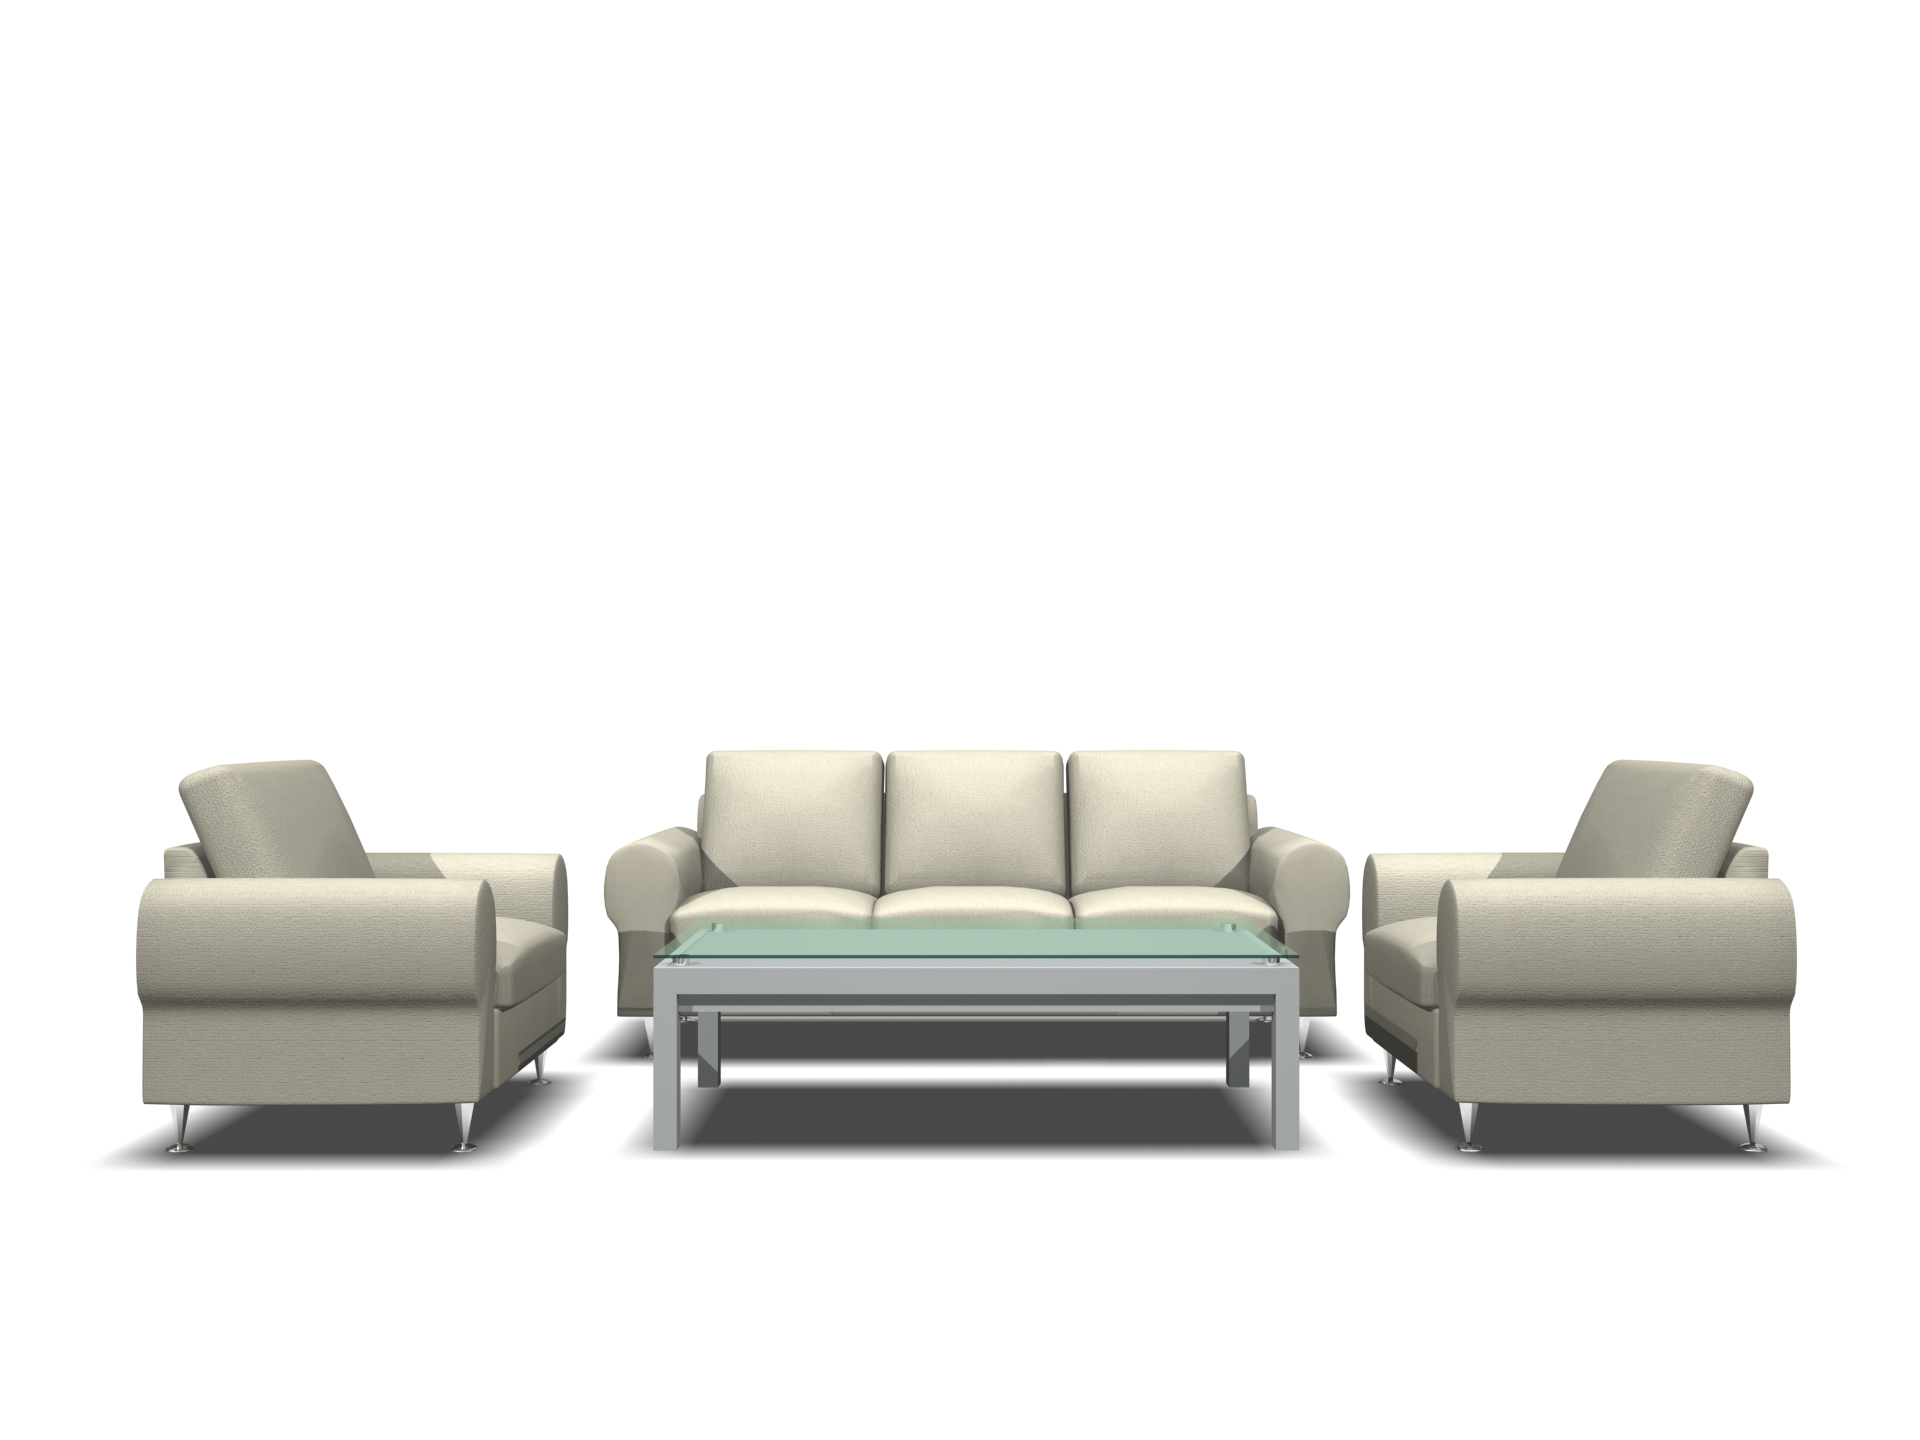 furniture – sas 013 3D Model